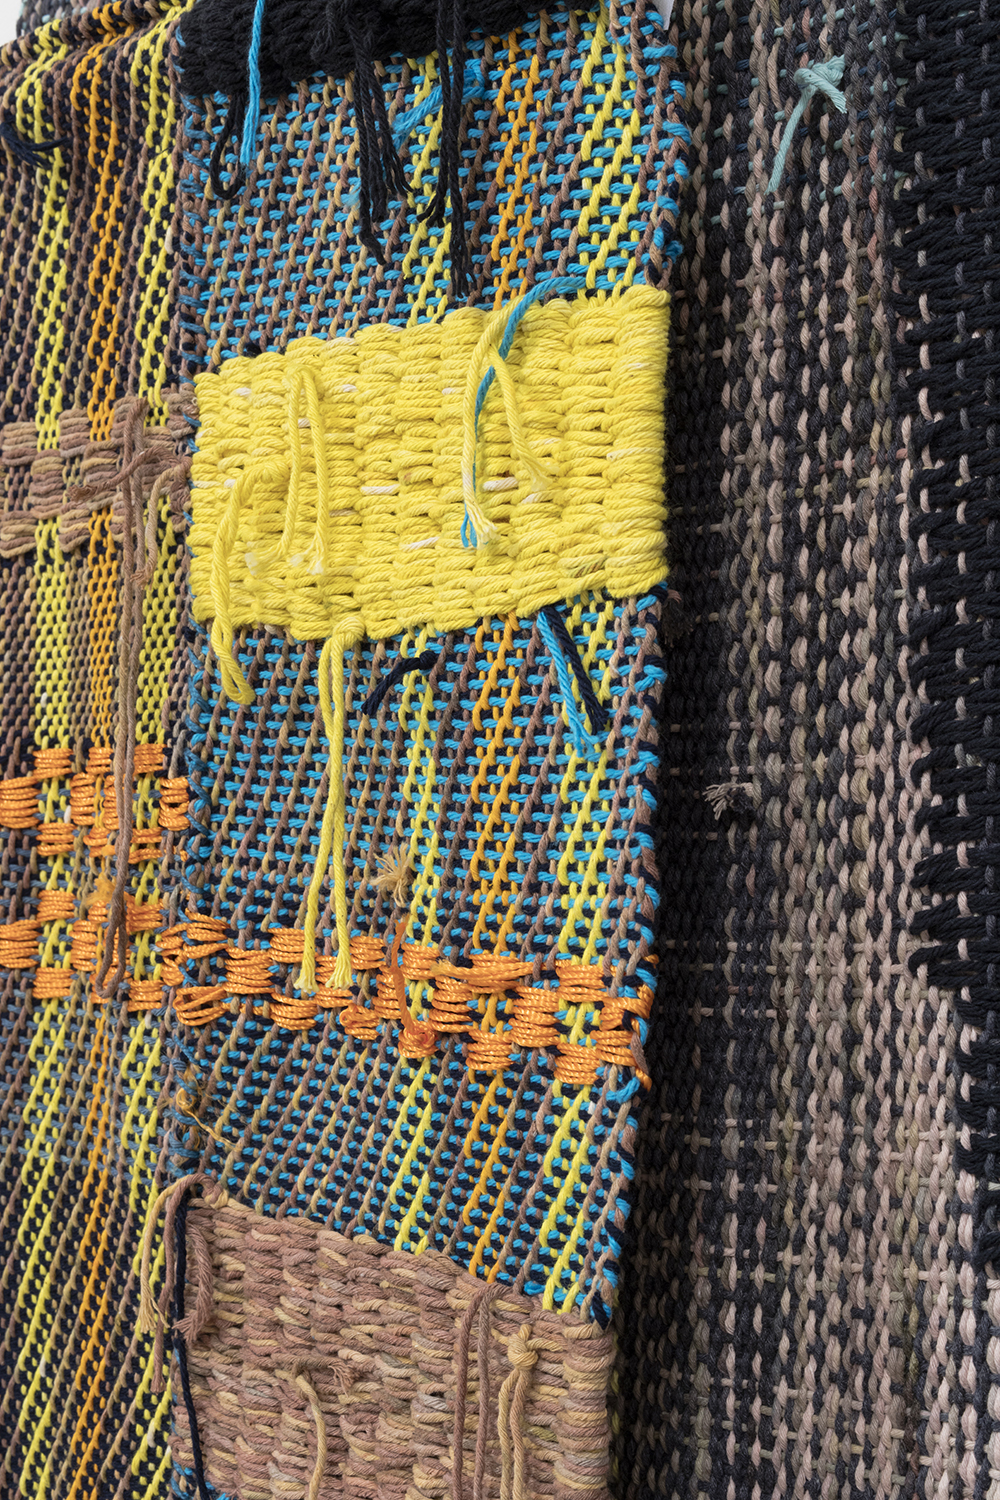 Diedrick Brackens. <em>Blue Under Night</em>, 2017. Woven cotton yarn, 78 x 31 inches & <em>Wading Still</em>, 2017. Woven cotton and nylon yarn, 40 x 29 1/2 inches. Detail